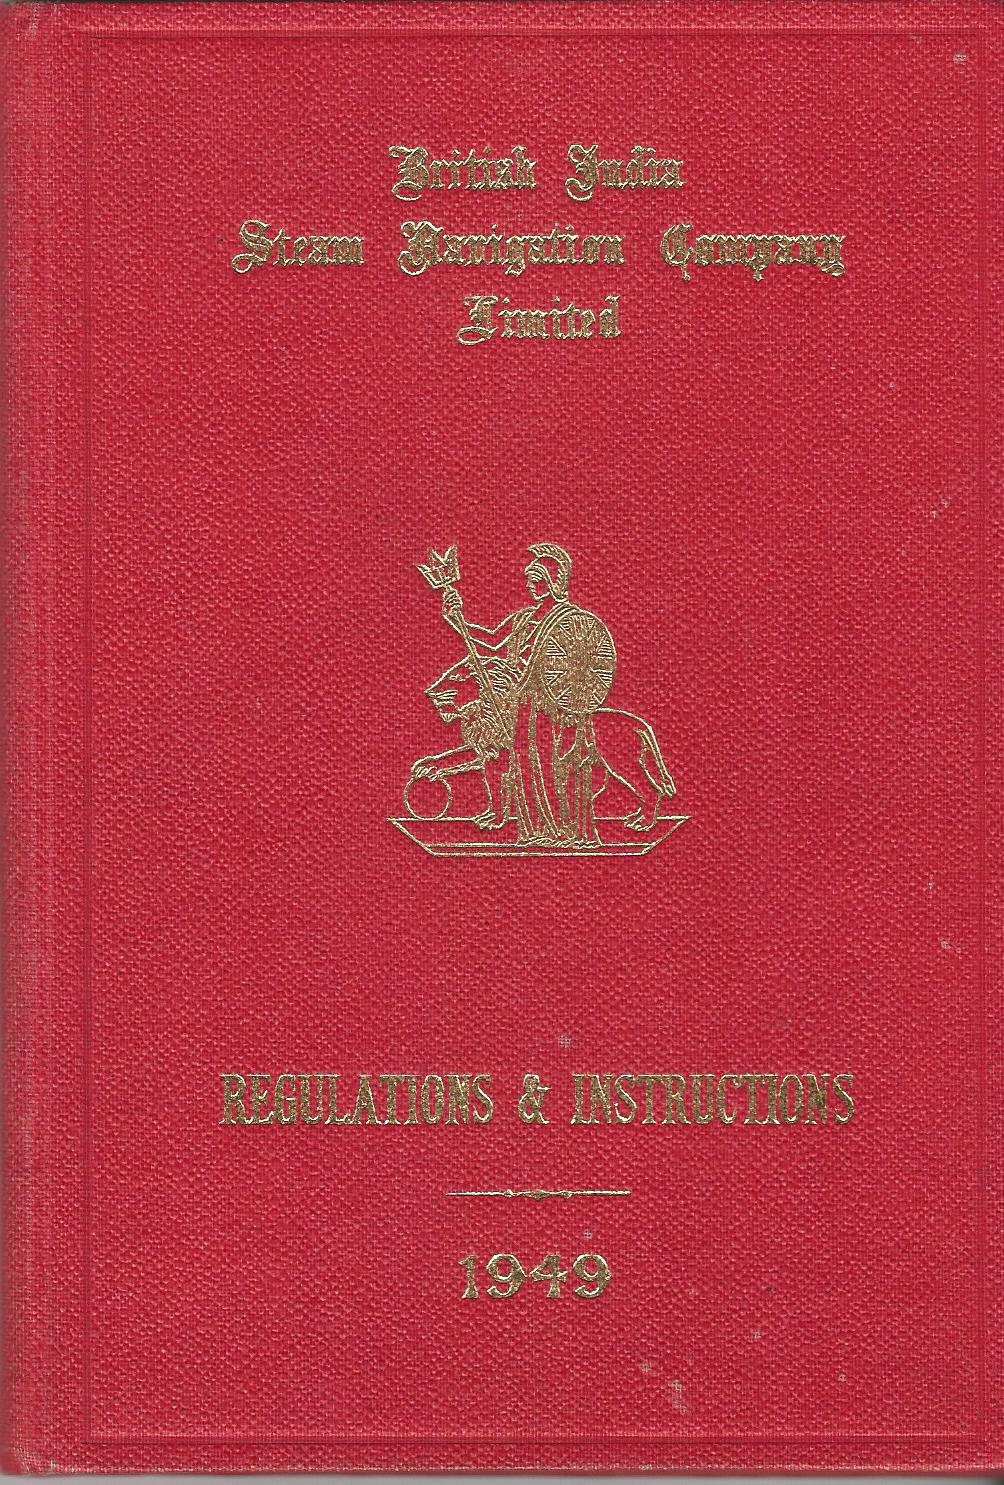 Image for British India Steam Navigation Company Limited: Regulations & Instructions 1949